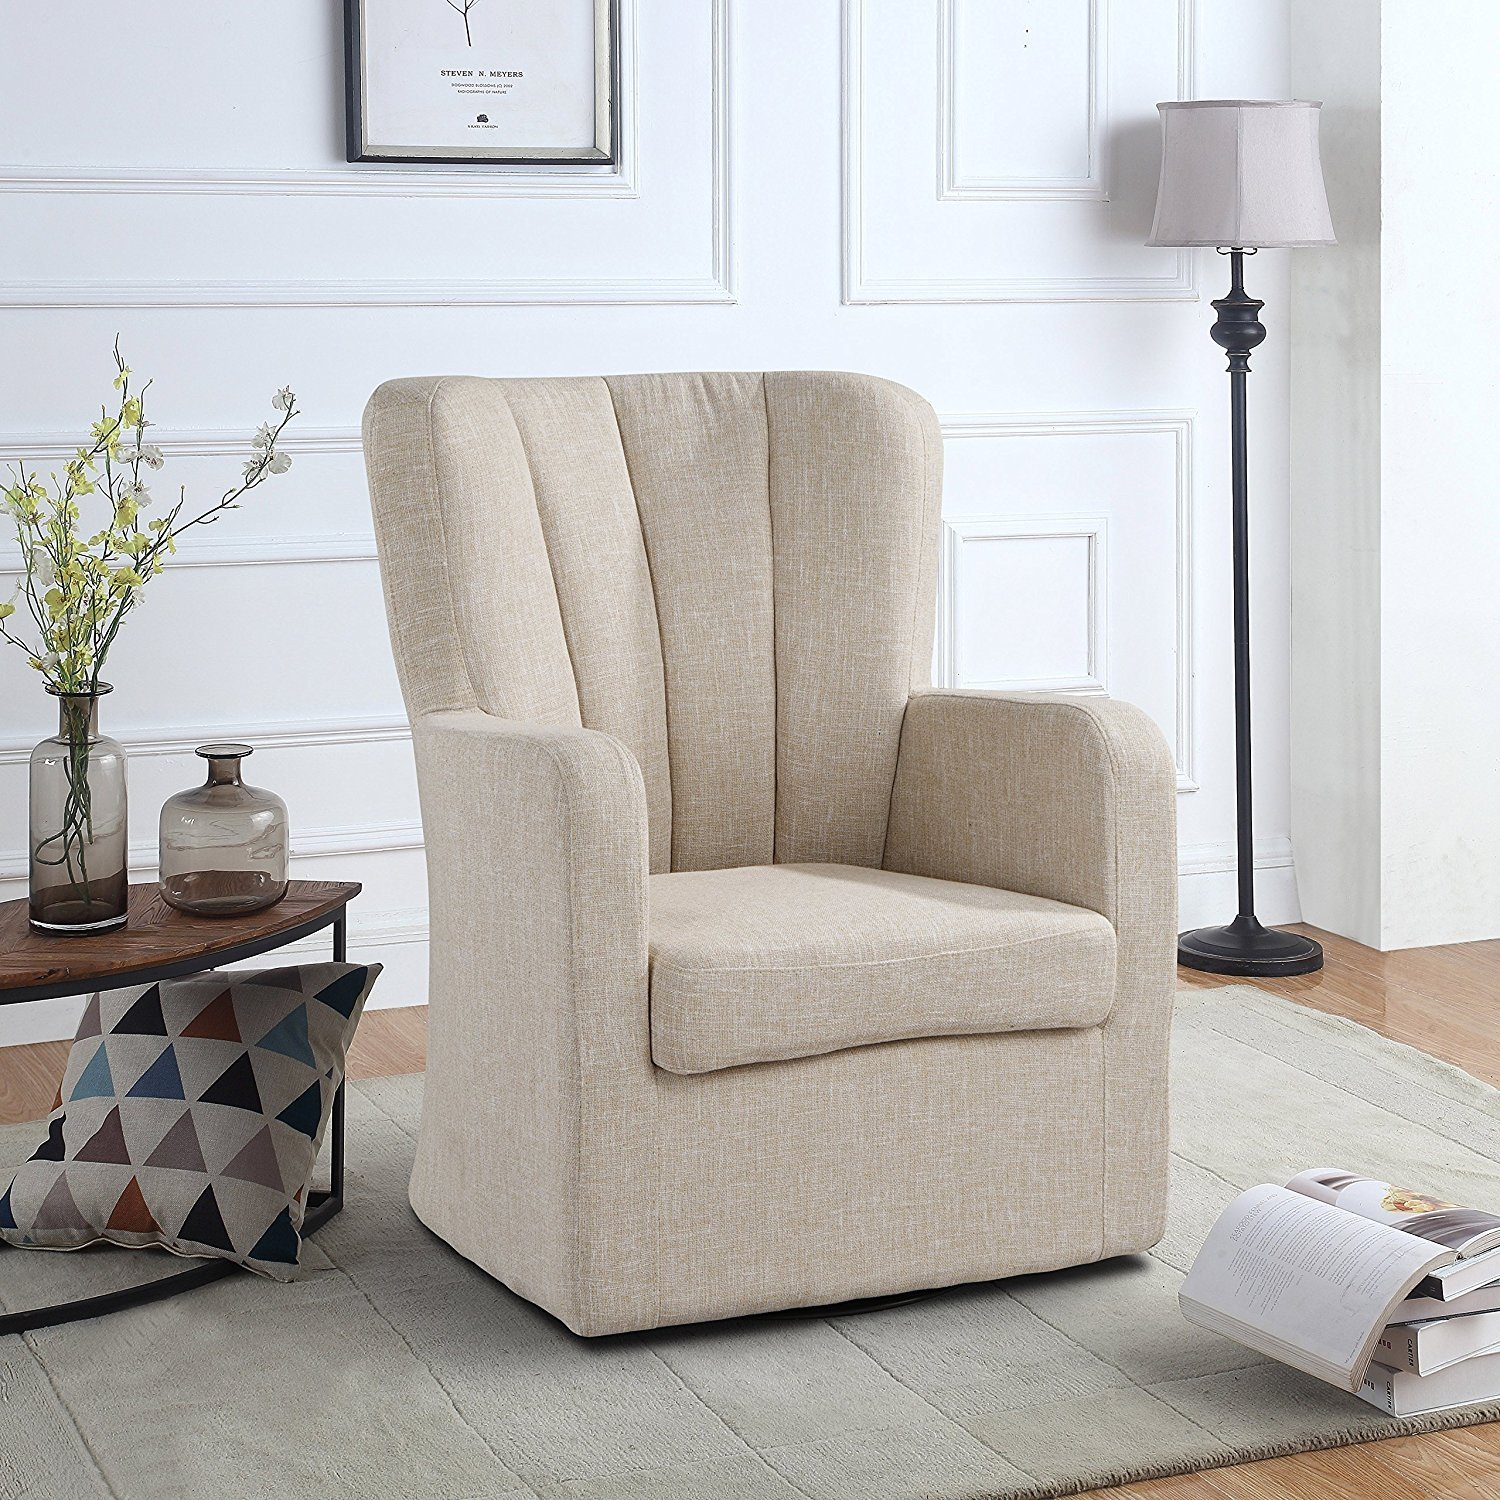 Modern Swivel Armchair Rotating Accent Chair For Living Room With Pleated Back Beige Walmart Com Walmart Com